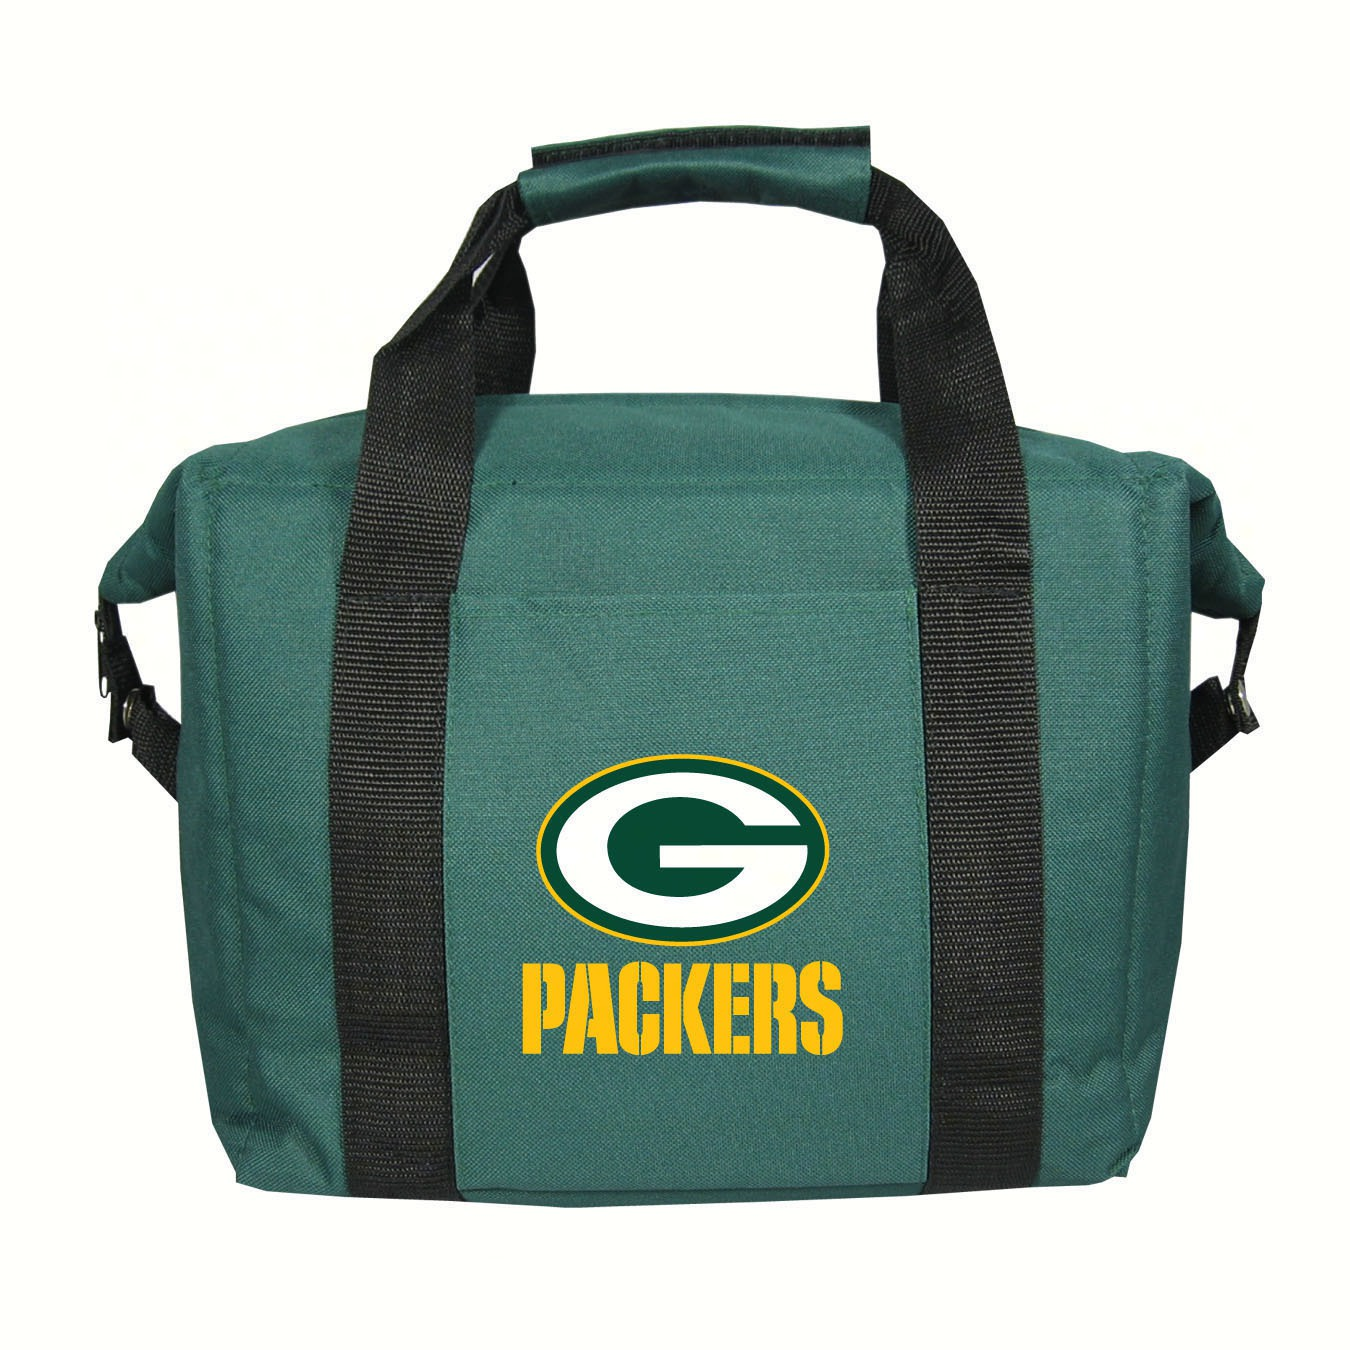 Kooler Bag - Green Bay Packers (Holds a 12 pack)